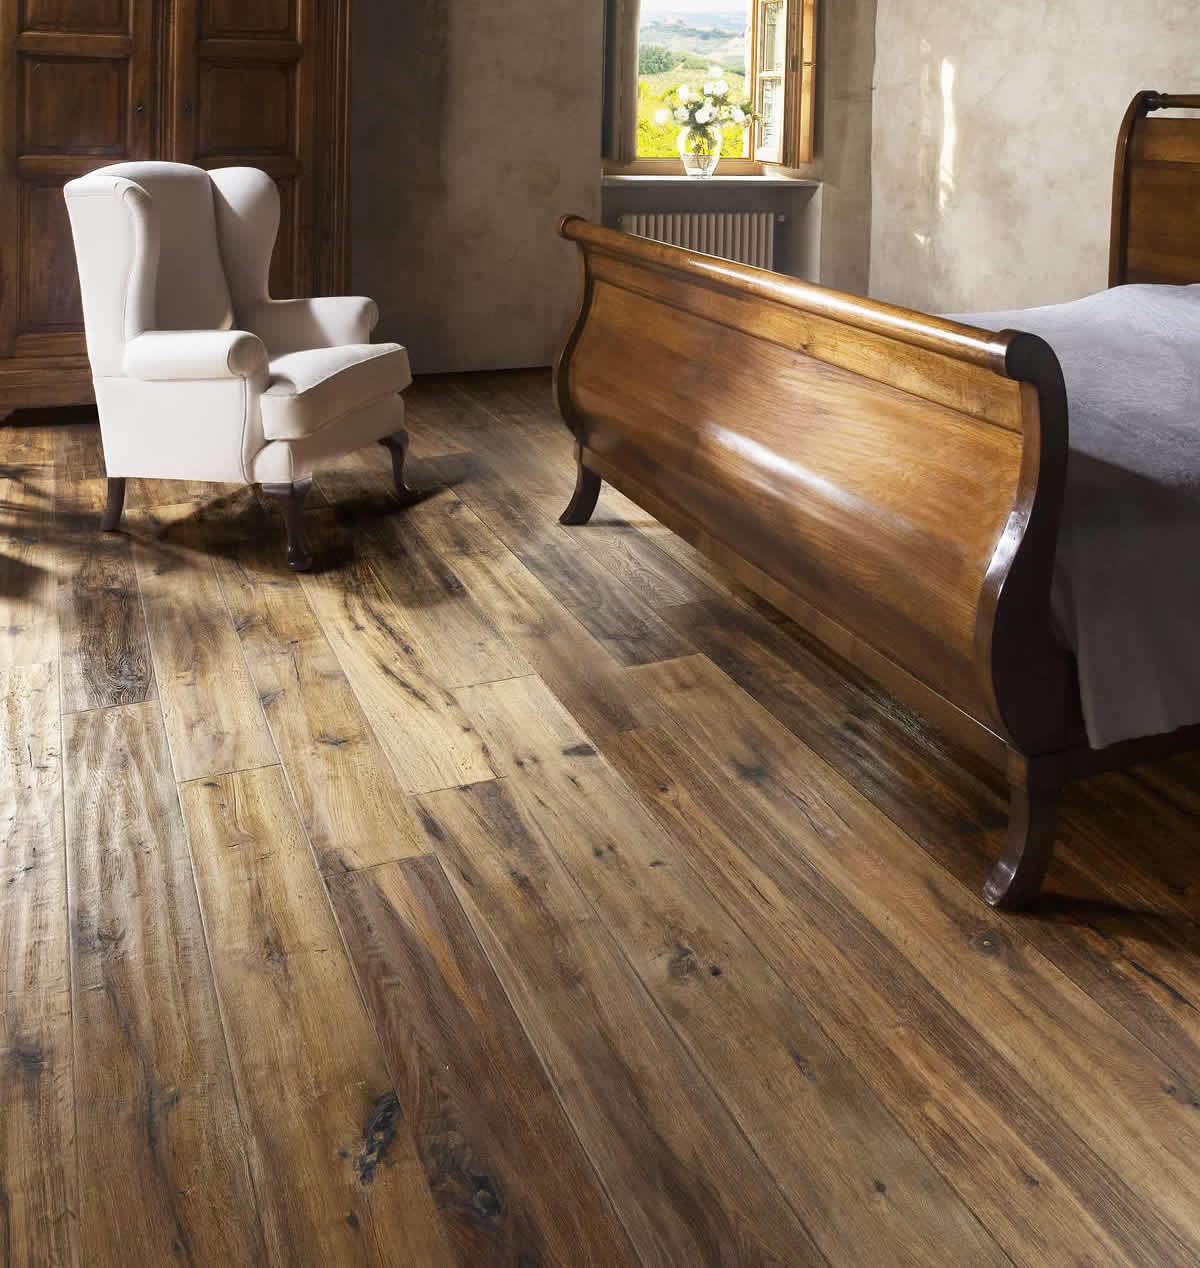 Kahrs artisan oak earth engineered wood flooring for Engineered oak flooring